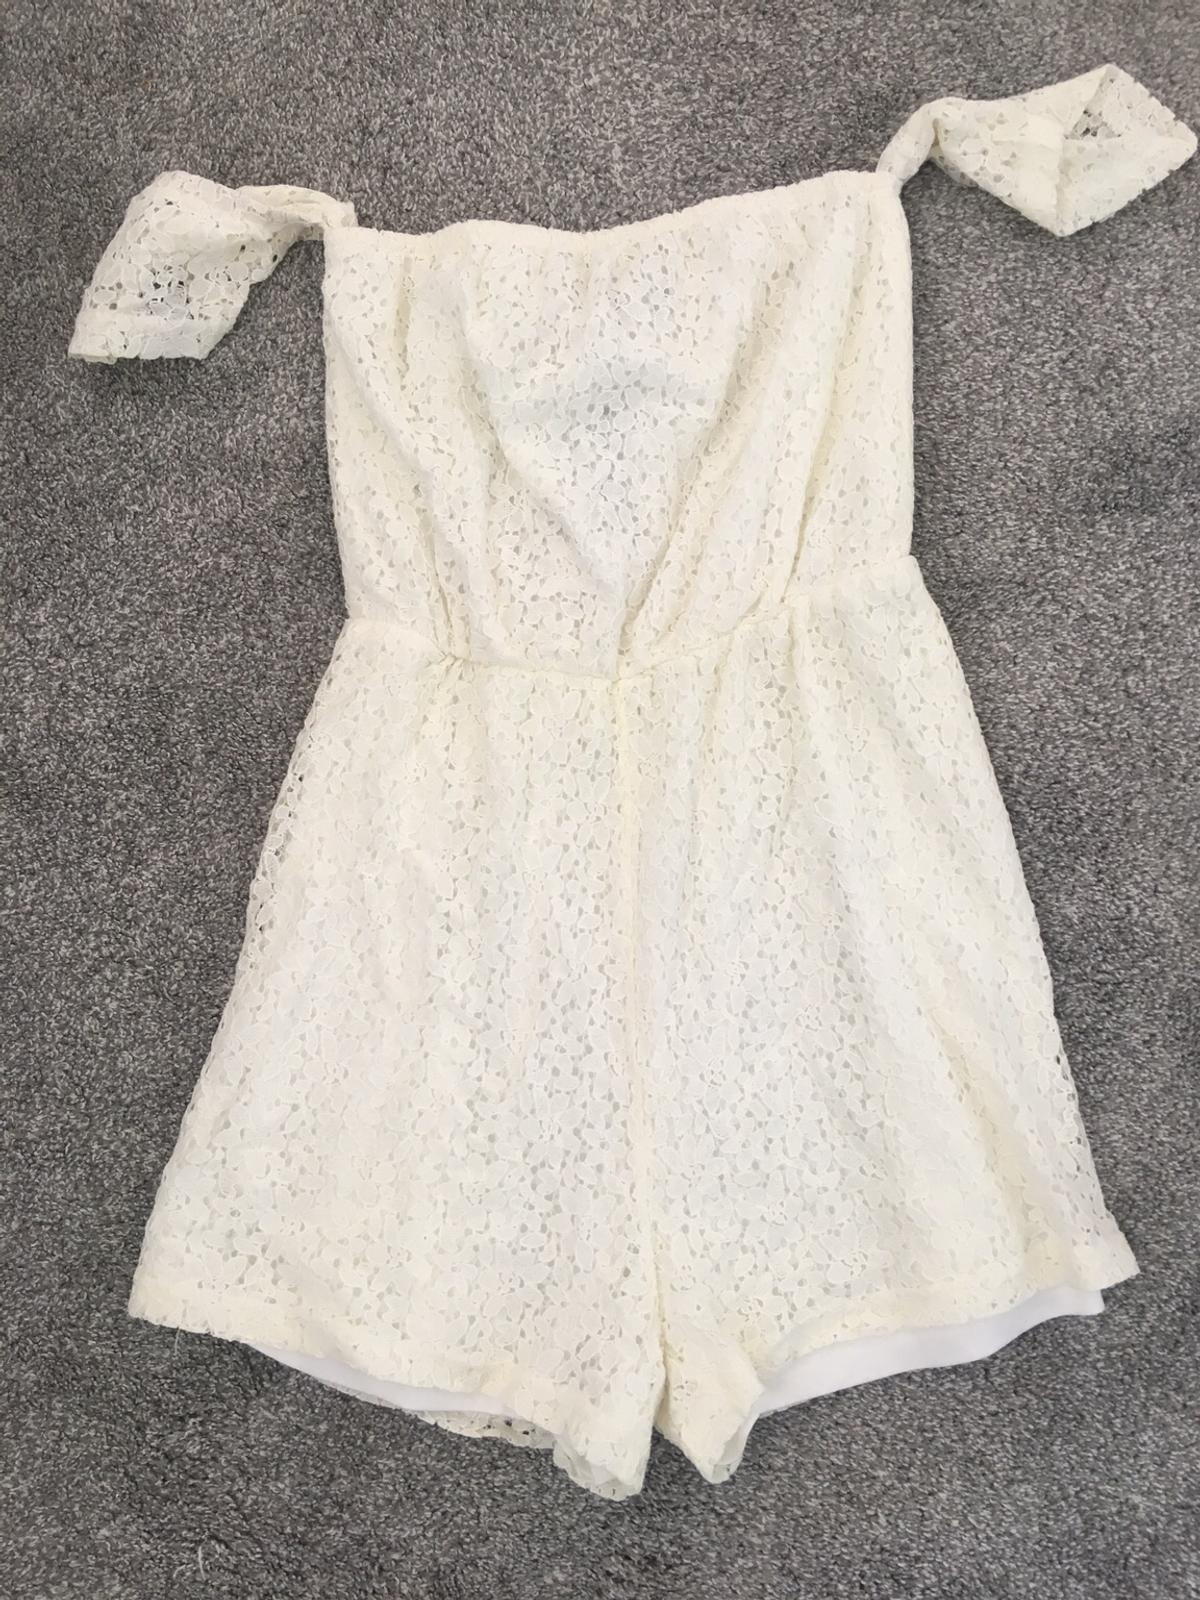 6260371ee8 Fashion Union cream lace Playsuit Size 10 new in B44 Walsall for ...